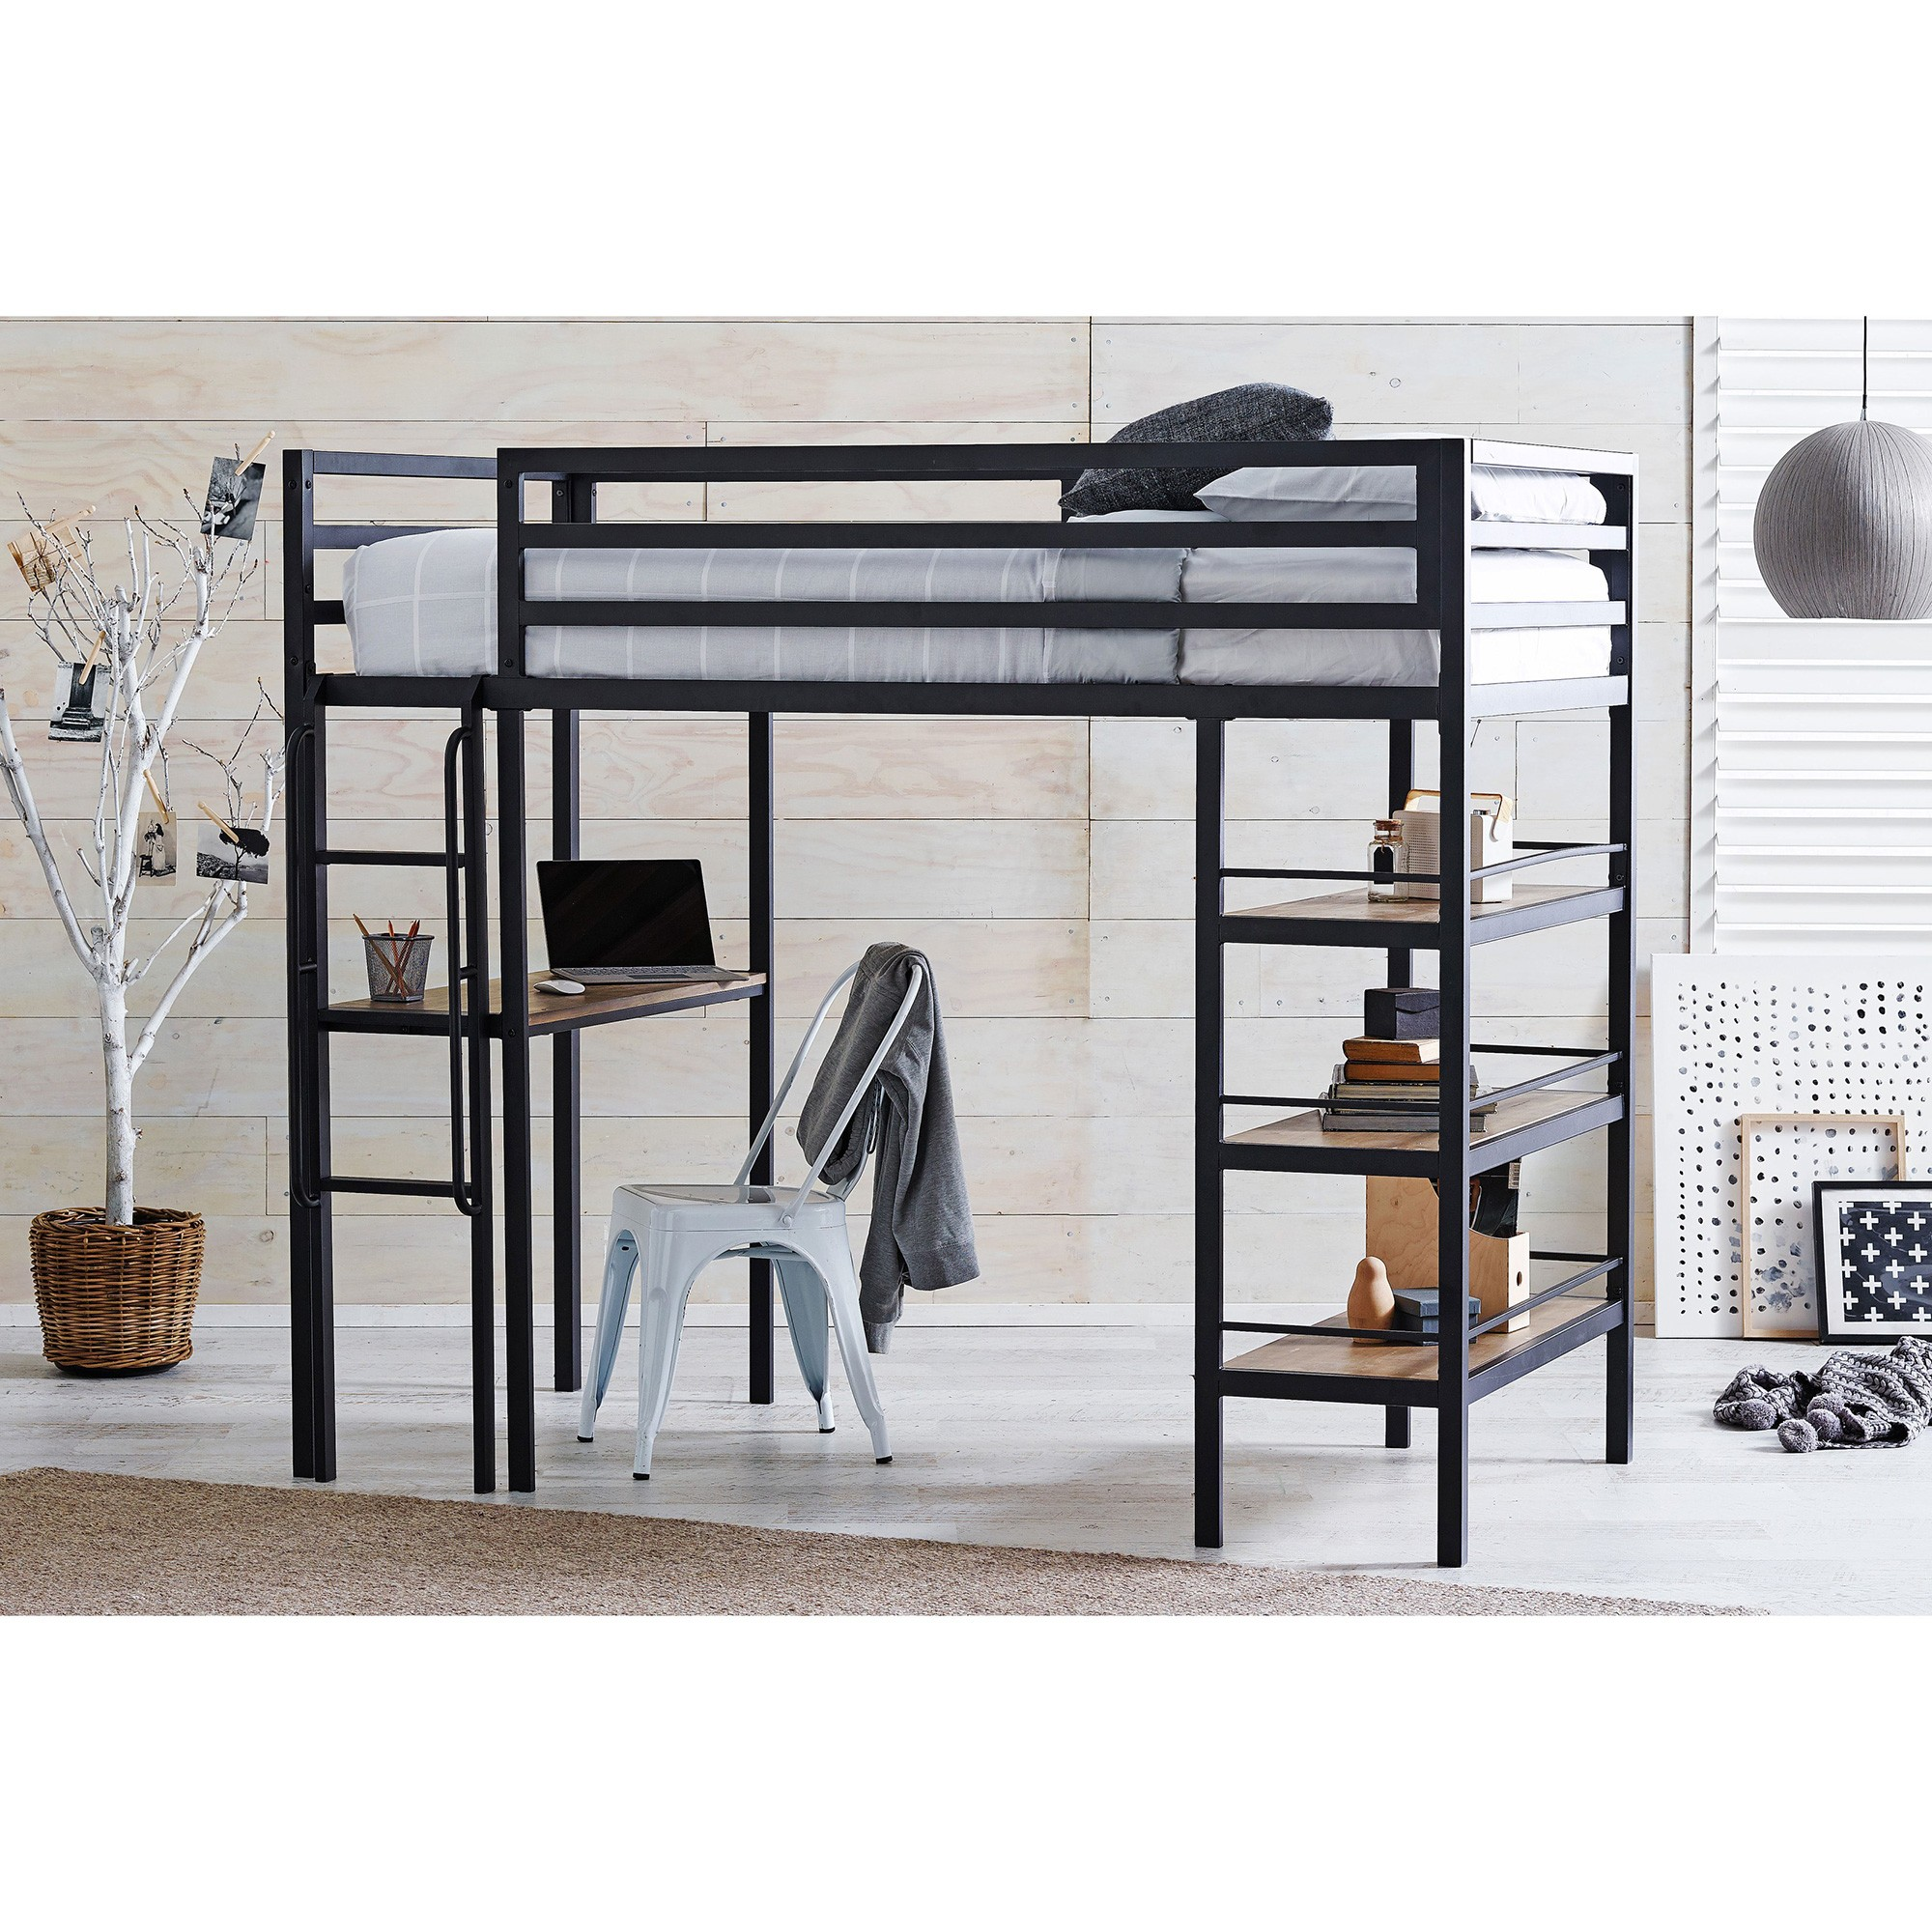 Castle Metal Loft Bed, King Single, Black